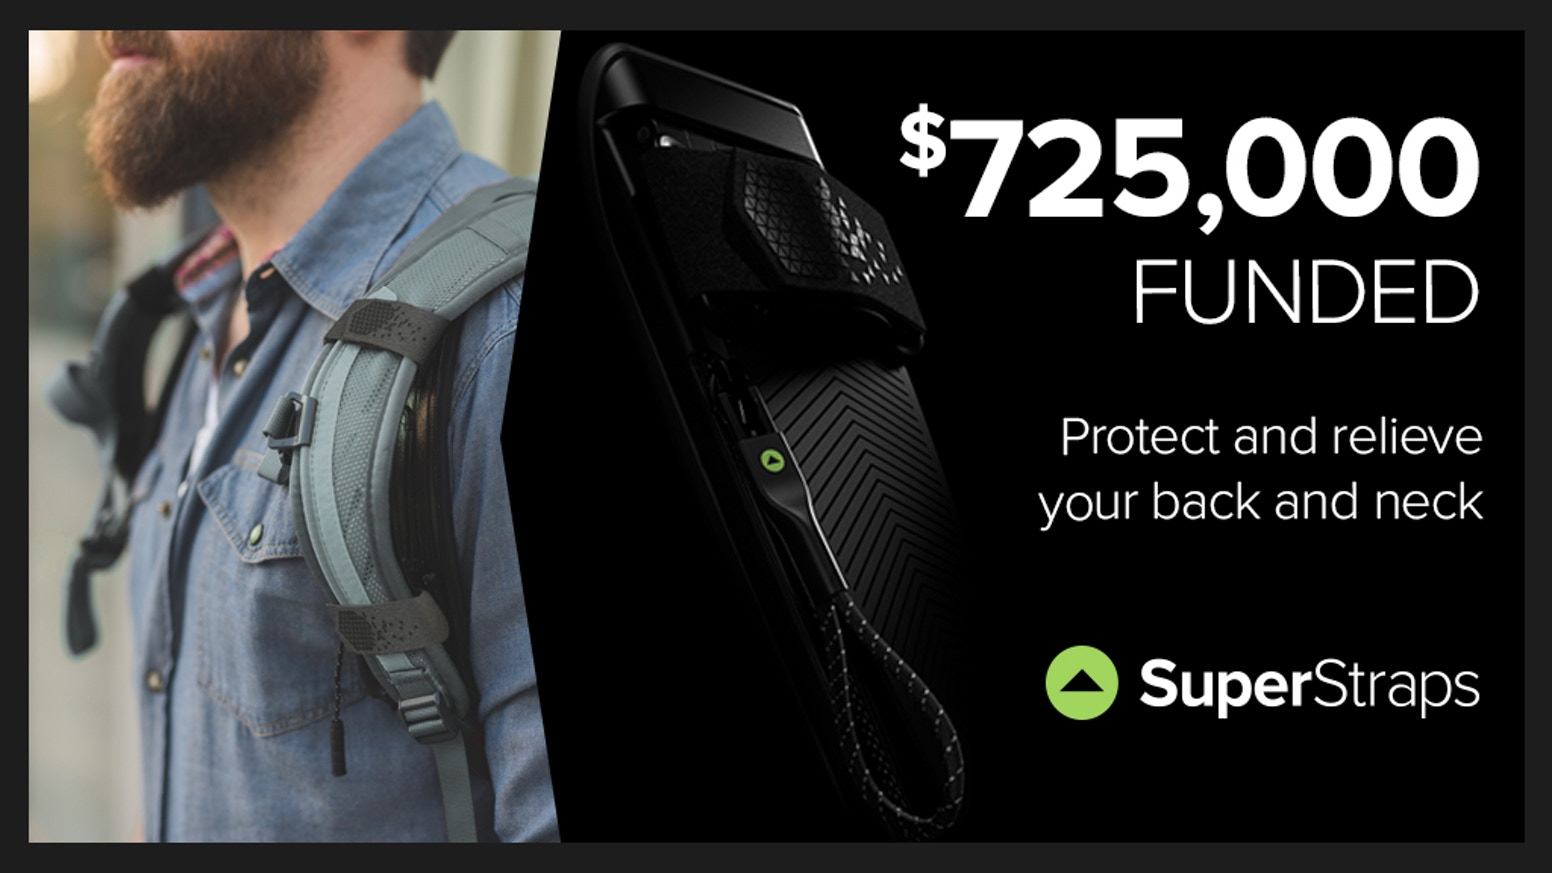 Super Straps - Relieve Backpack Strain And Improve Your Posture Instantly - $725,709 Raised | 9,455 Backers